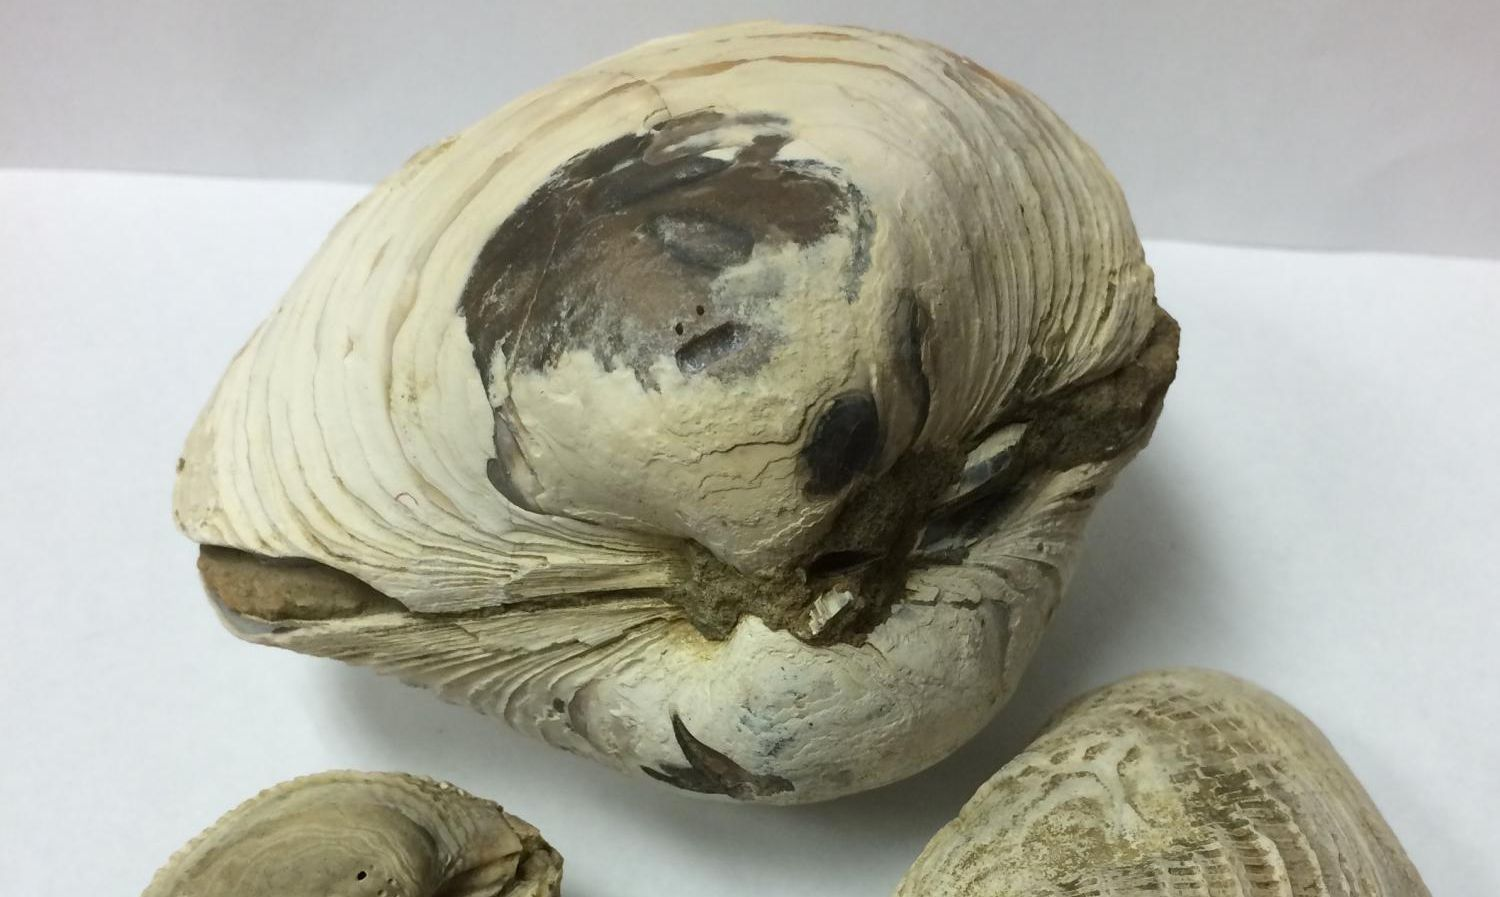 Researchers studying fossilized bivalves discovered evidence of a one-two punch of cataclysmic climate change.